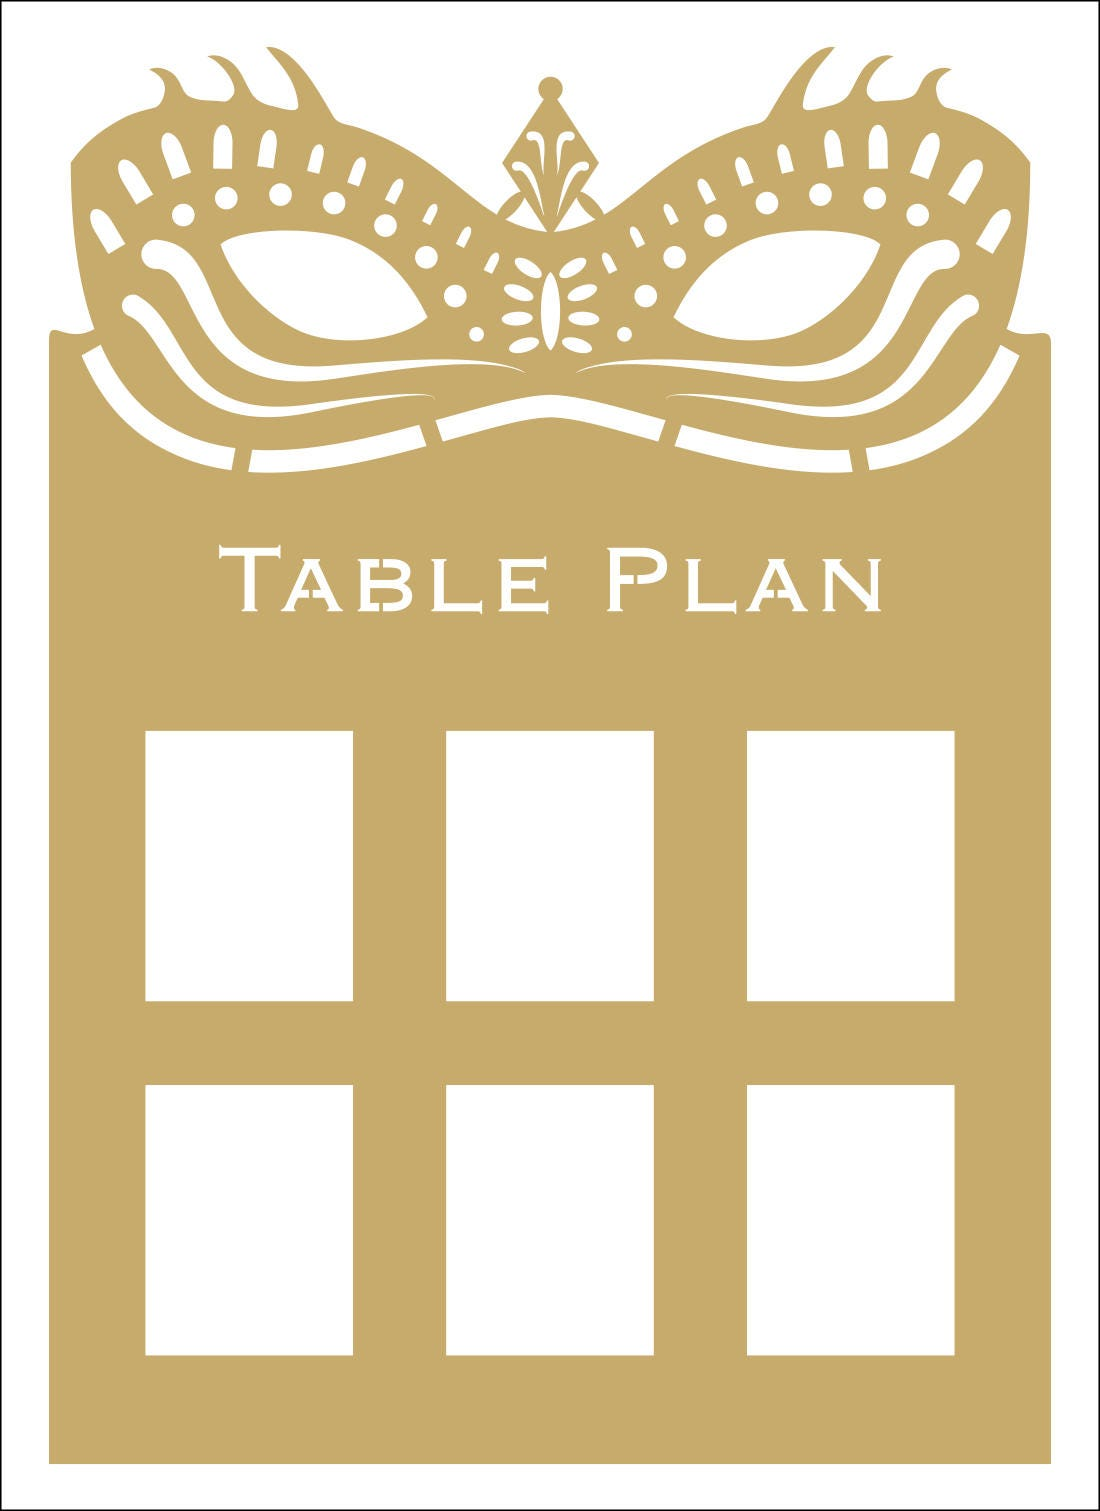 Masquerade Ball Table Plan Seating Mardi Gras